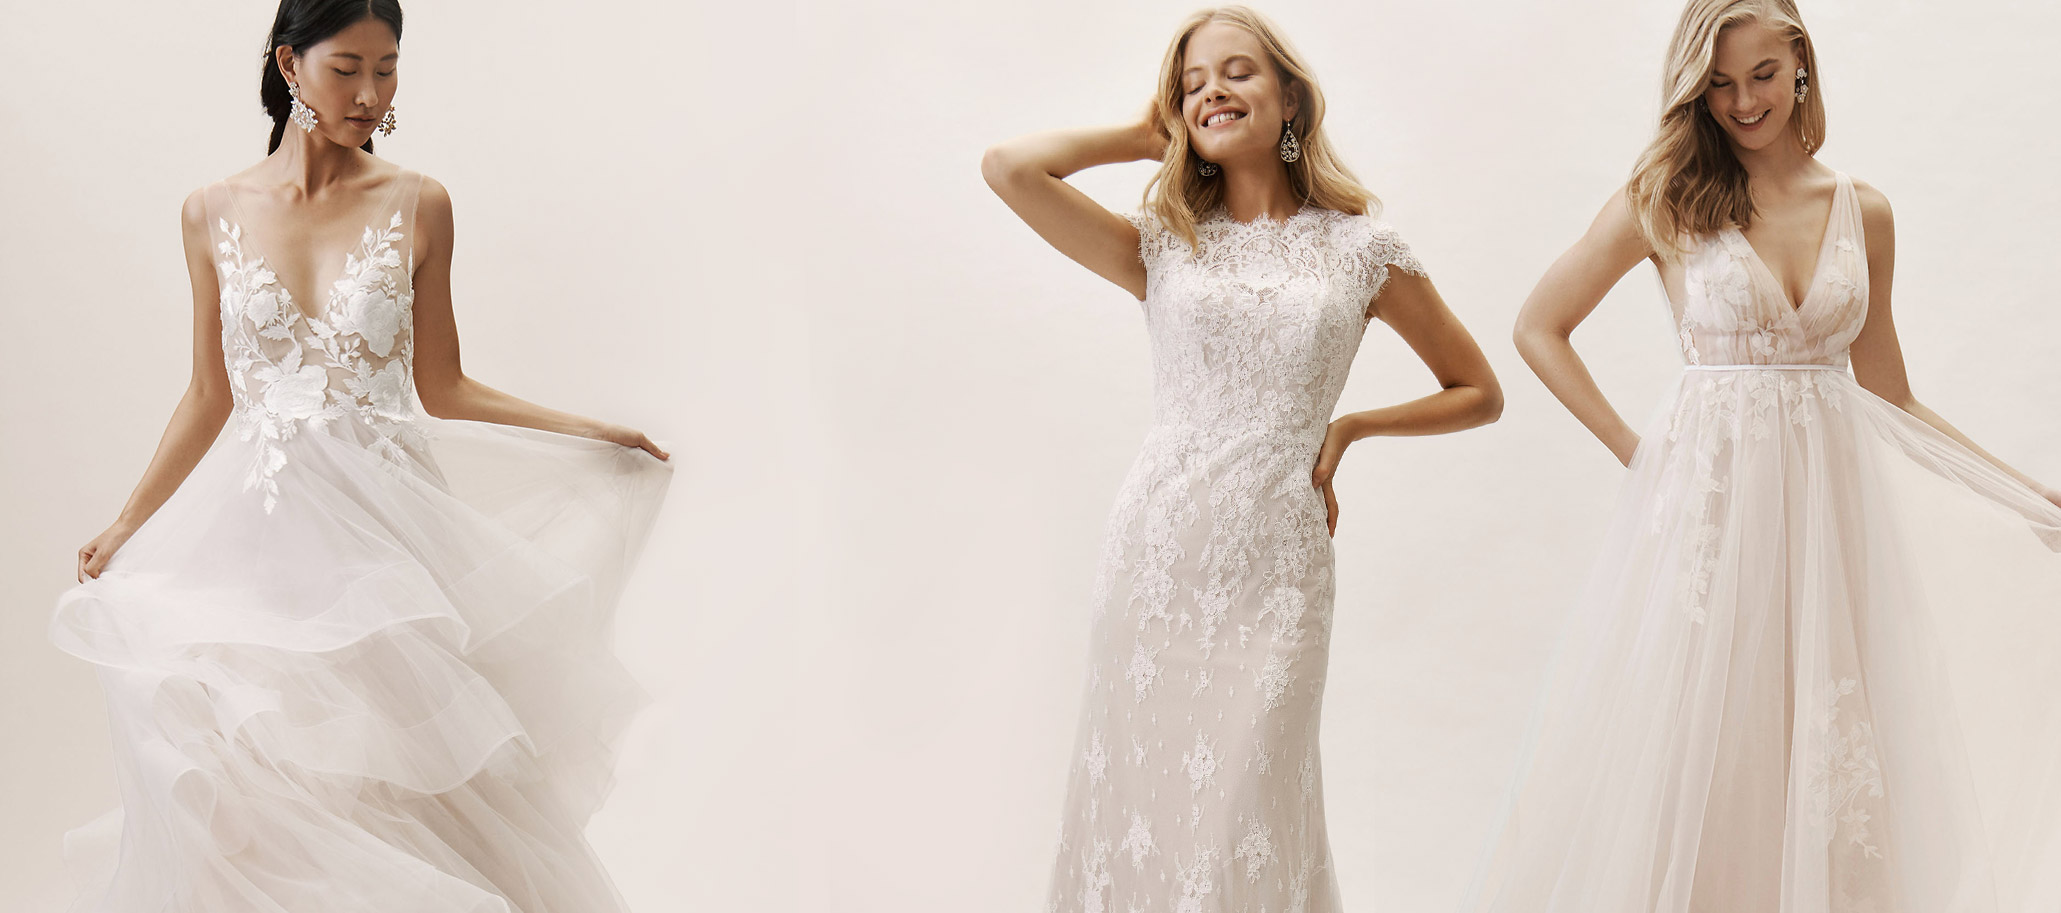 Discount Wedding Dresses & Sales